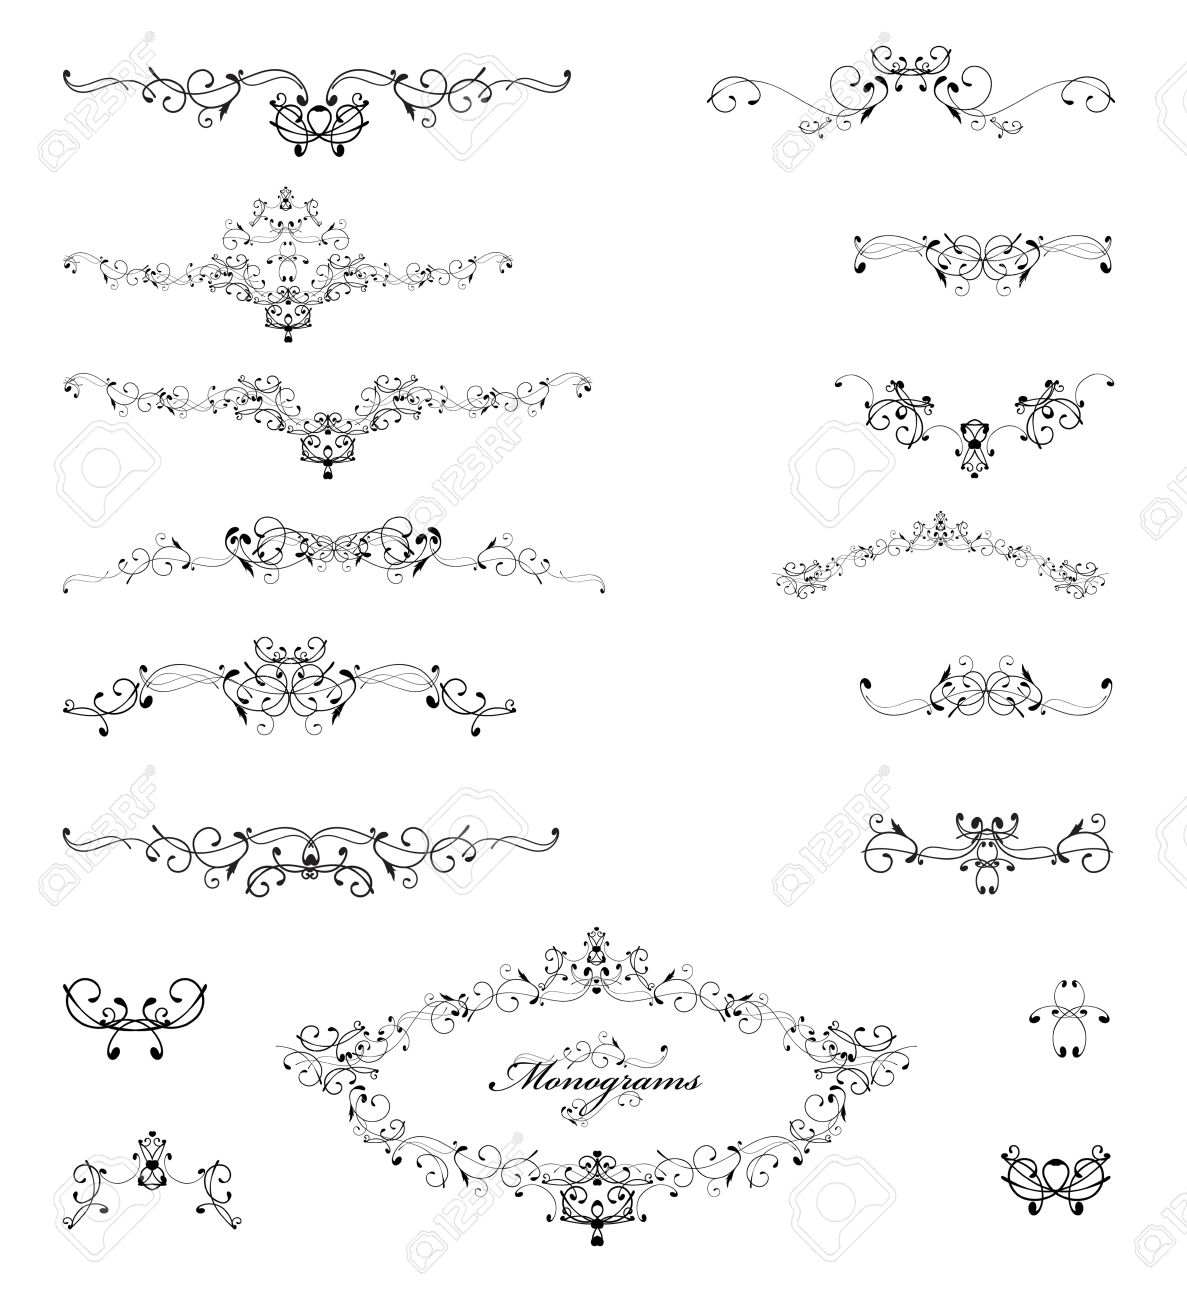 Swirl Monograms And Frames For Decoration Stock Vector - 15584246